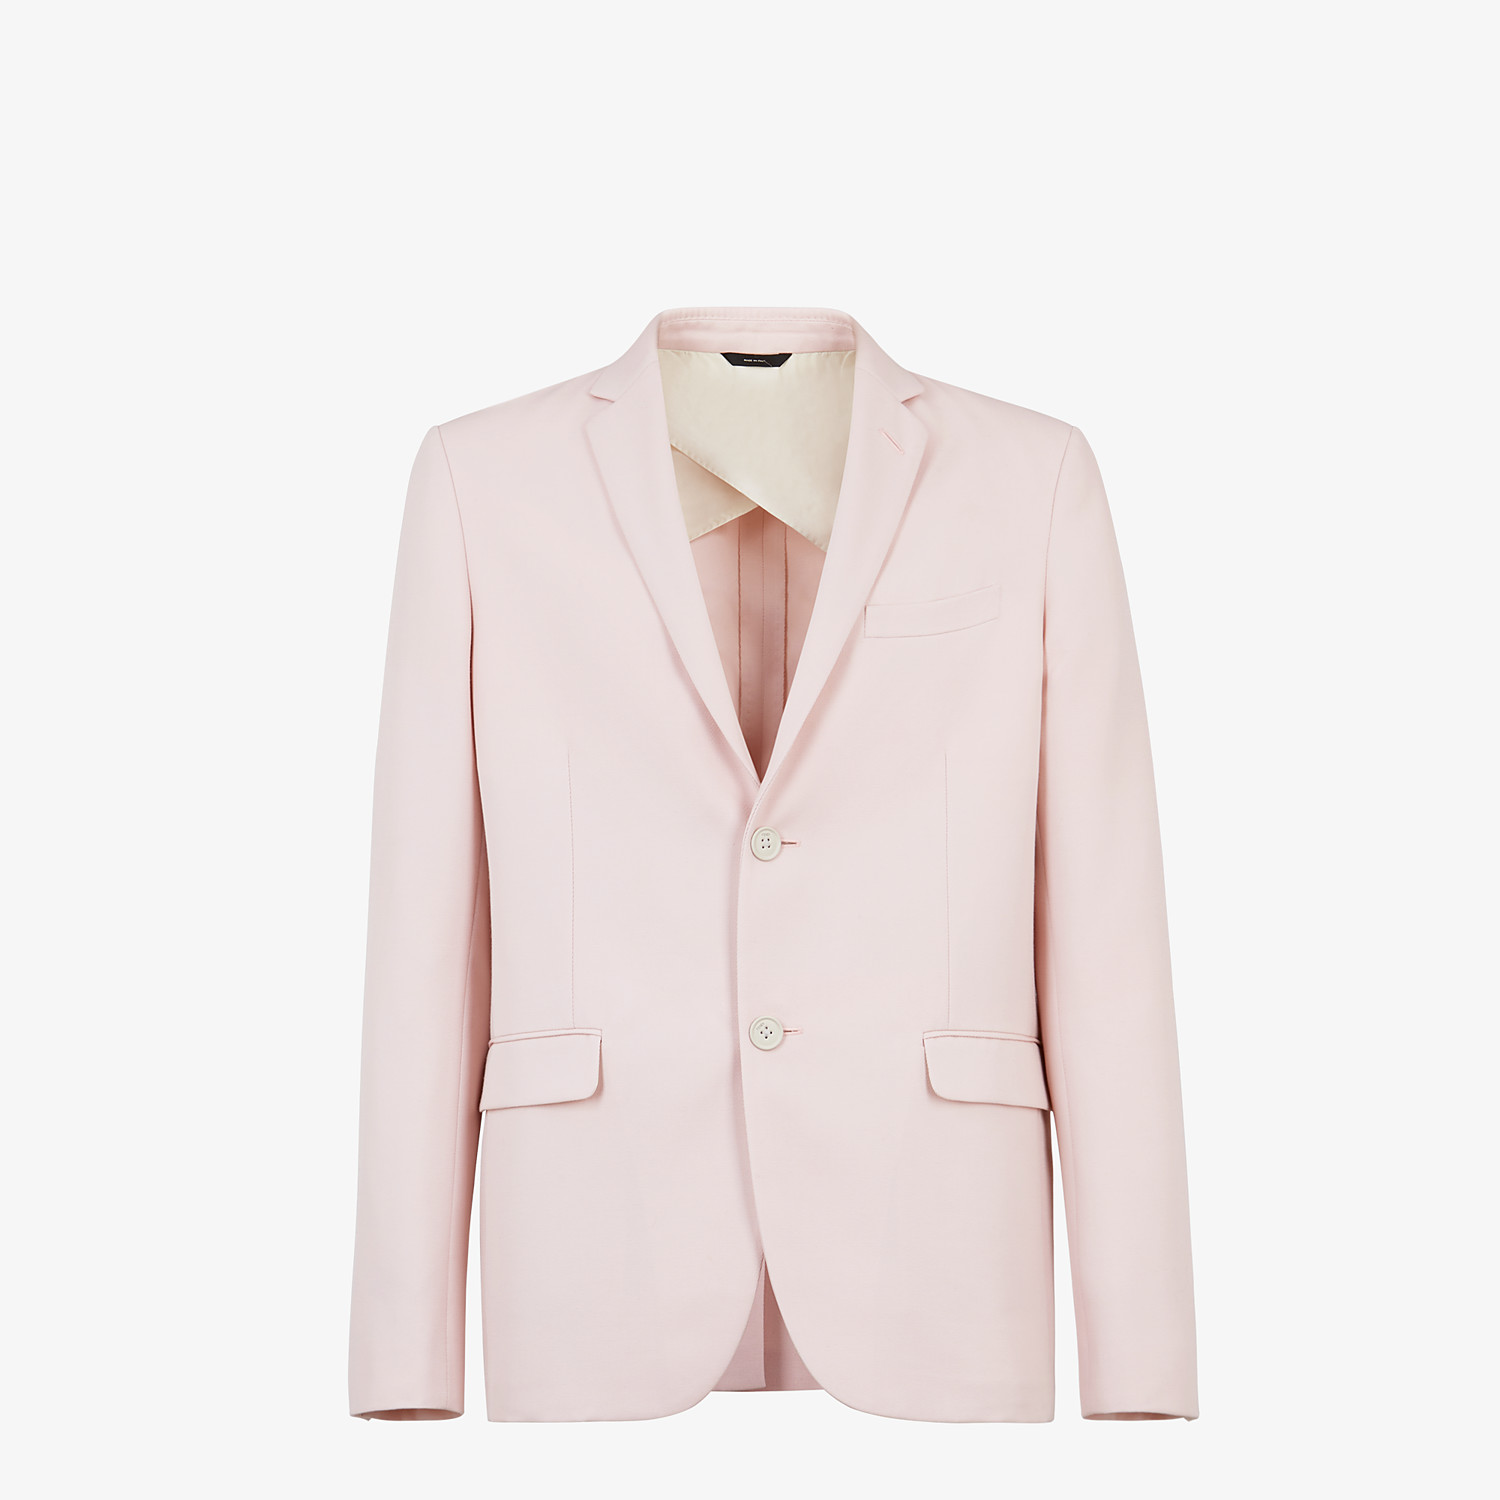 FENDI JACKET - Pink wool blazer - view 1 detail